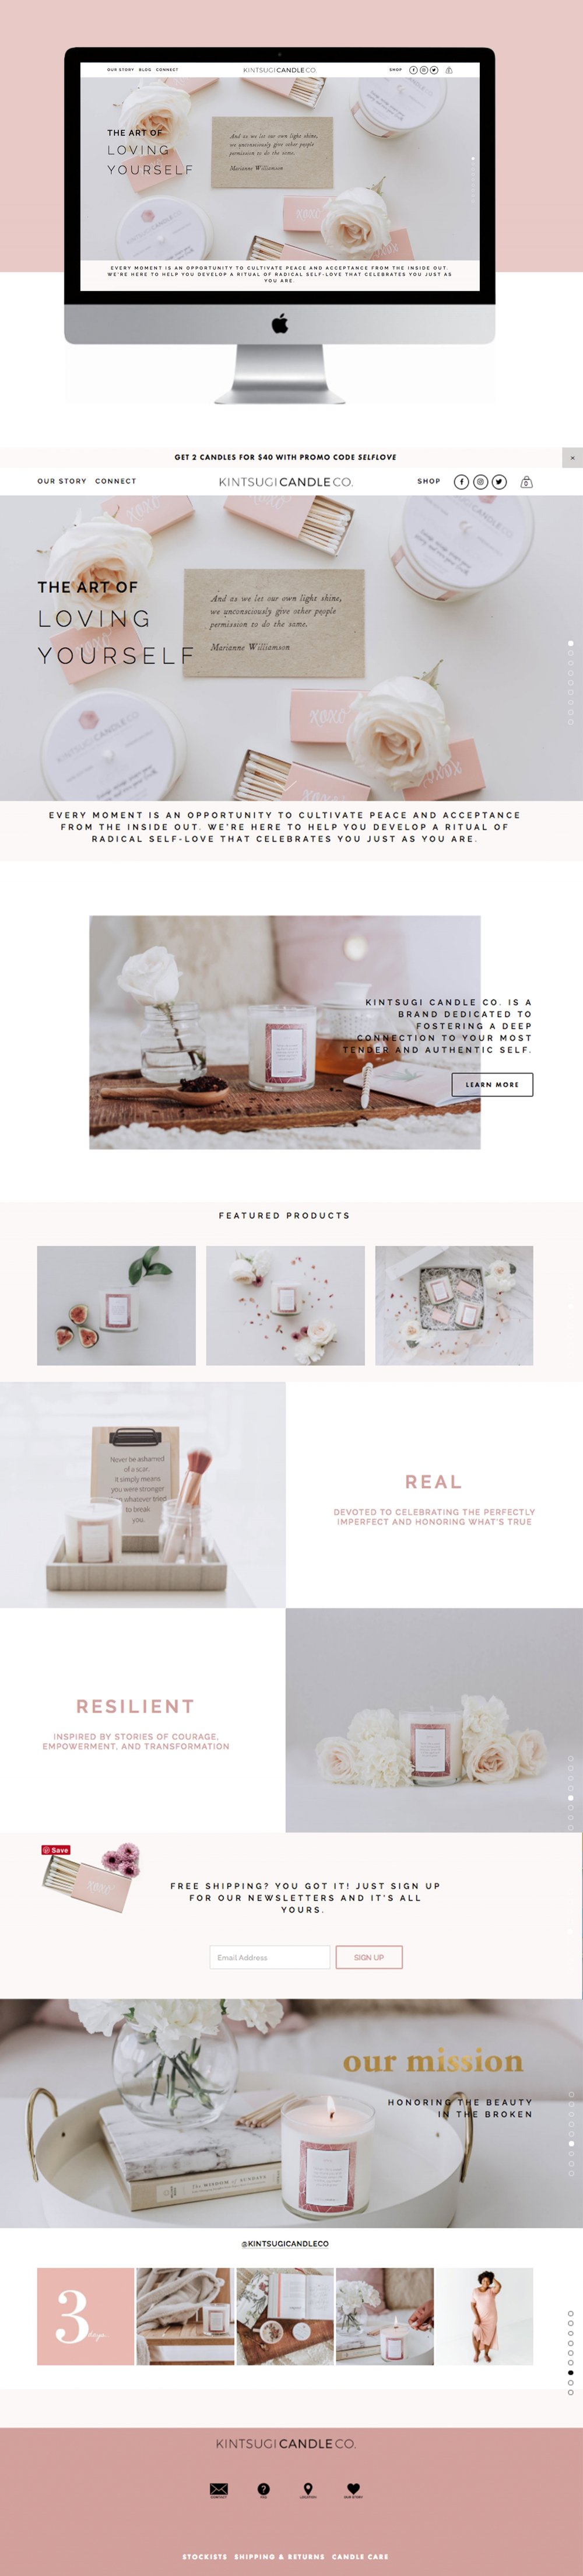 Feminine Pink Ecommerce Website Design for Aromatherapy Candle Company - Kintsugi Candle. Co